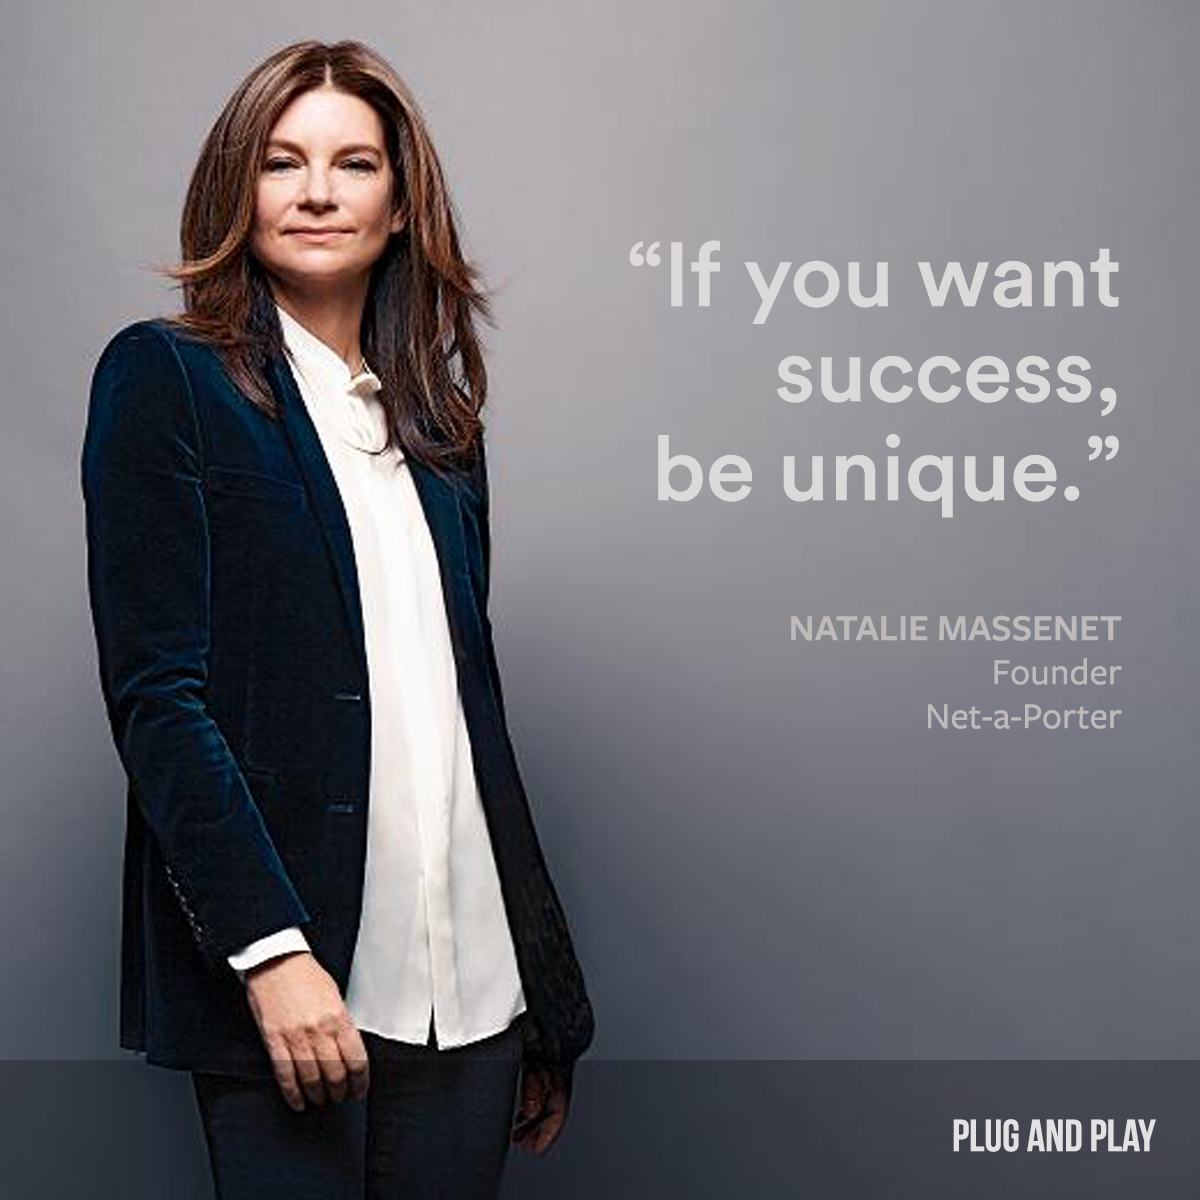 natalie massenet quote